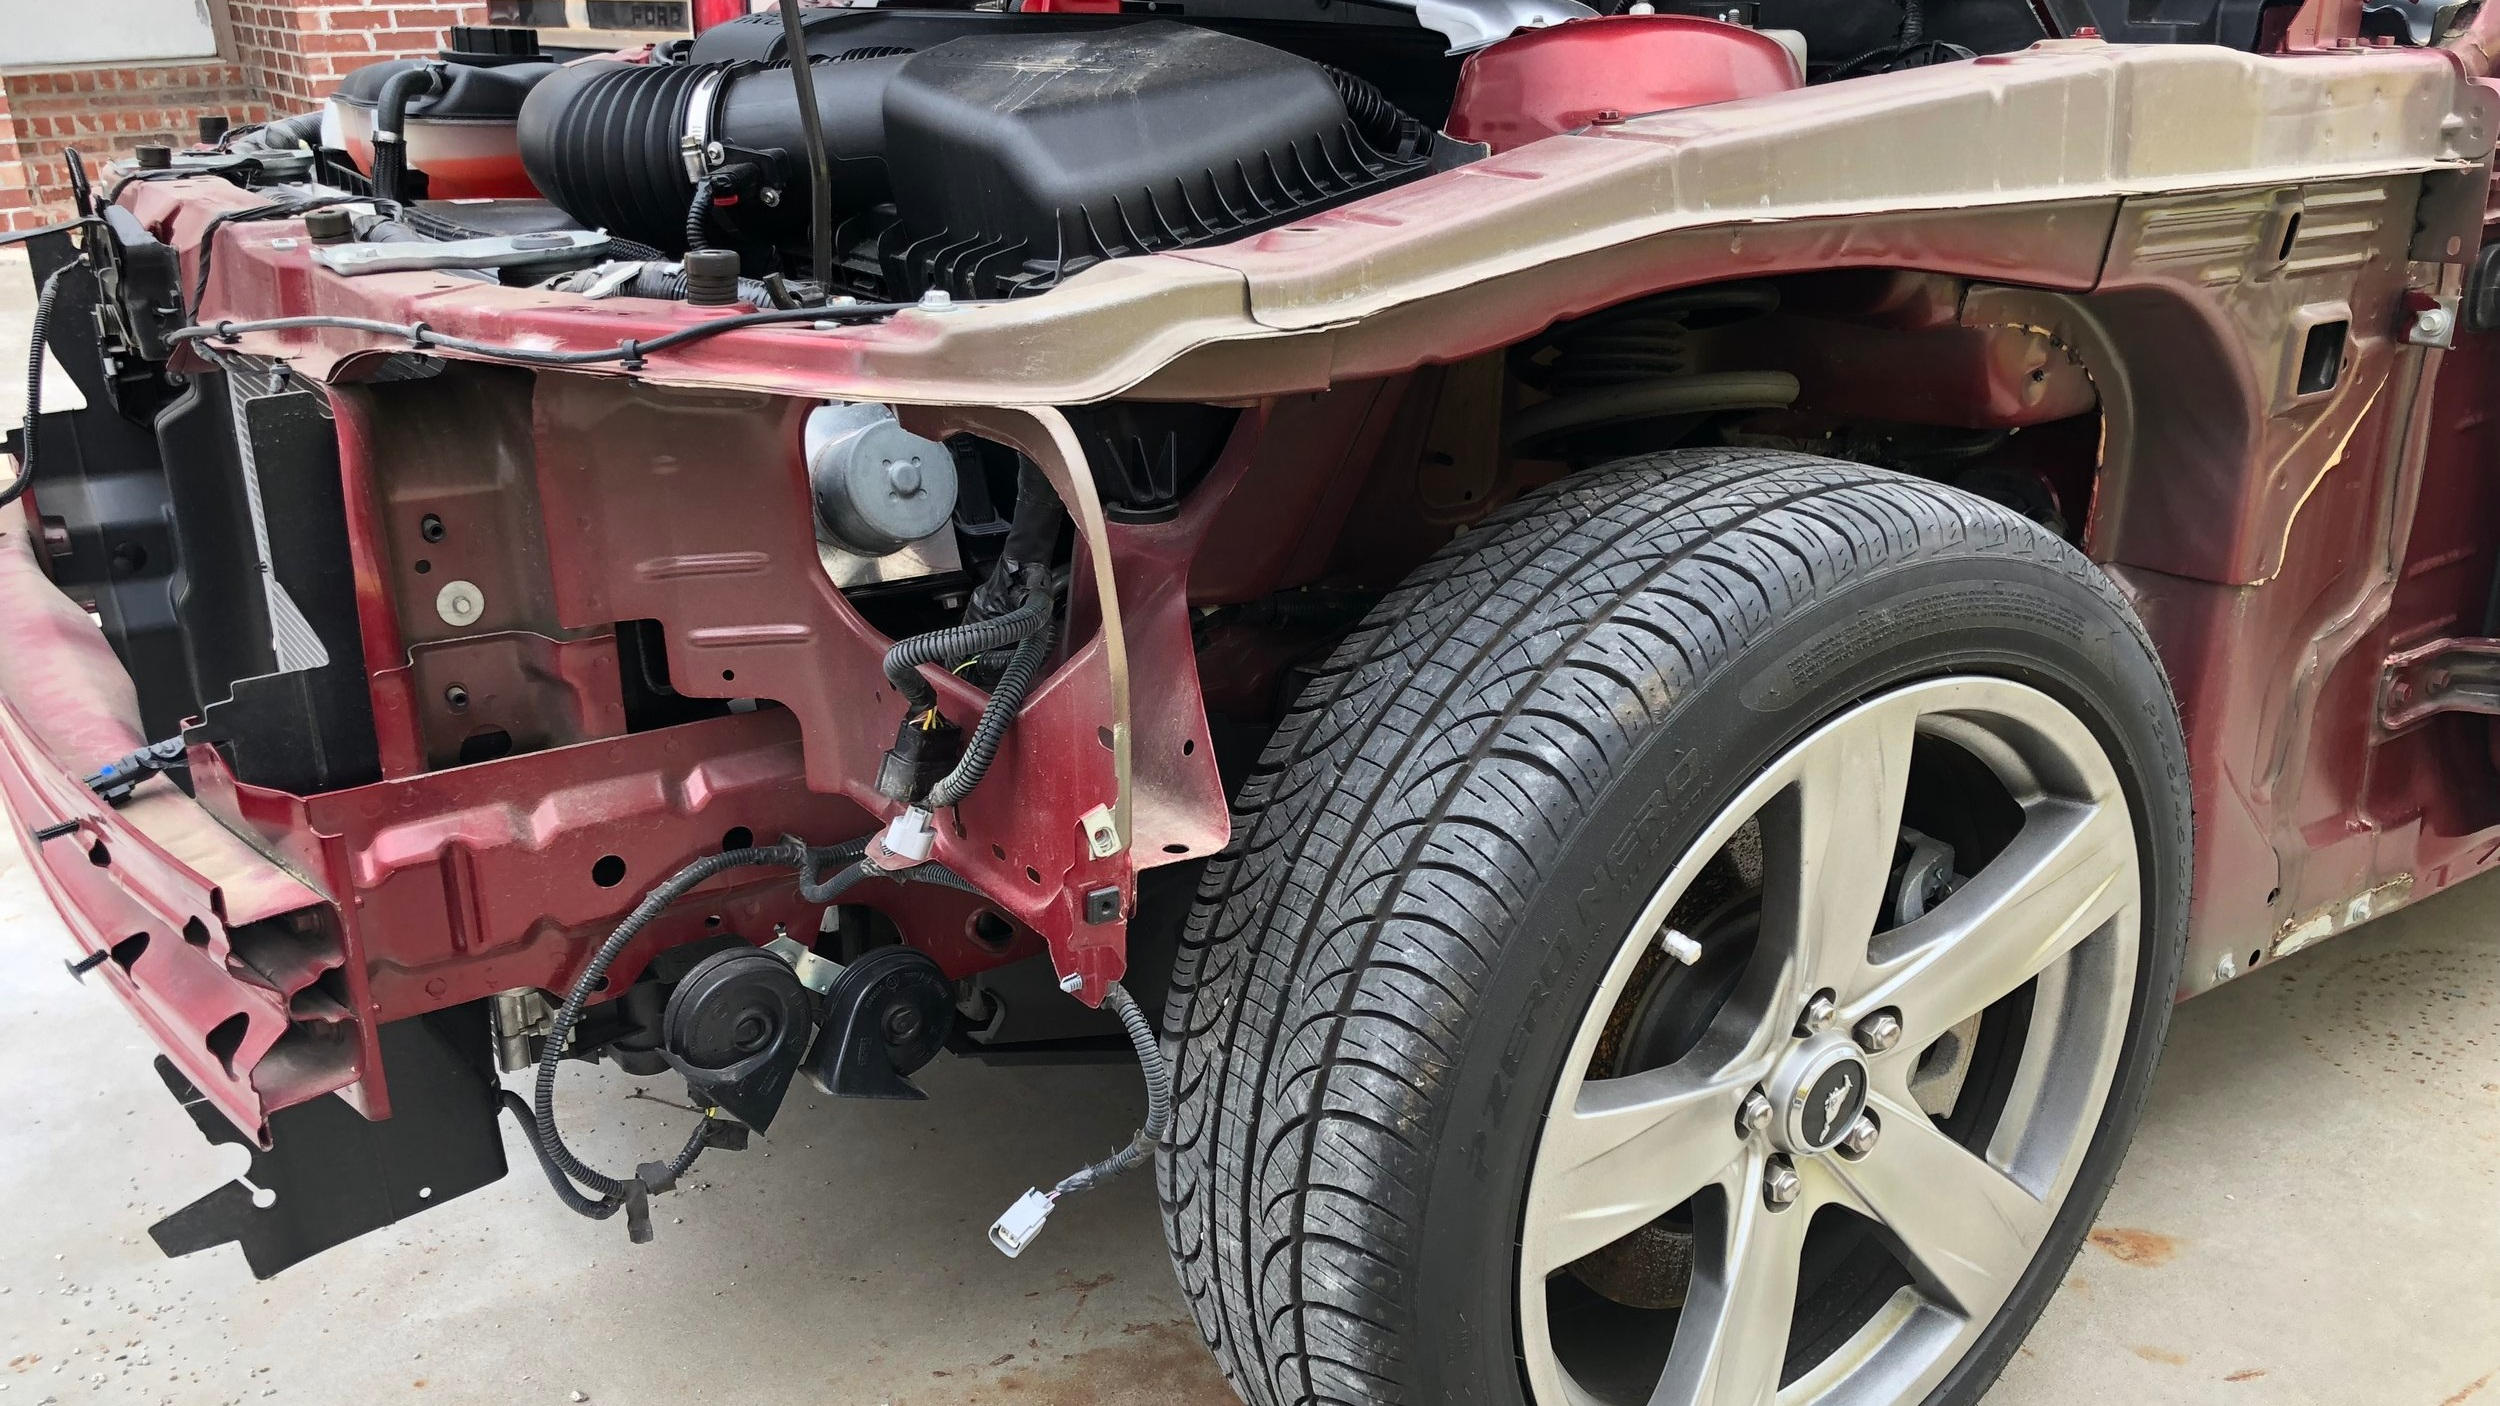 The exterior is stripped from the donor Mustang, and the conversion is now underway.